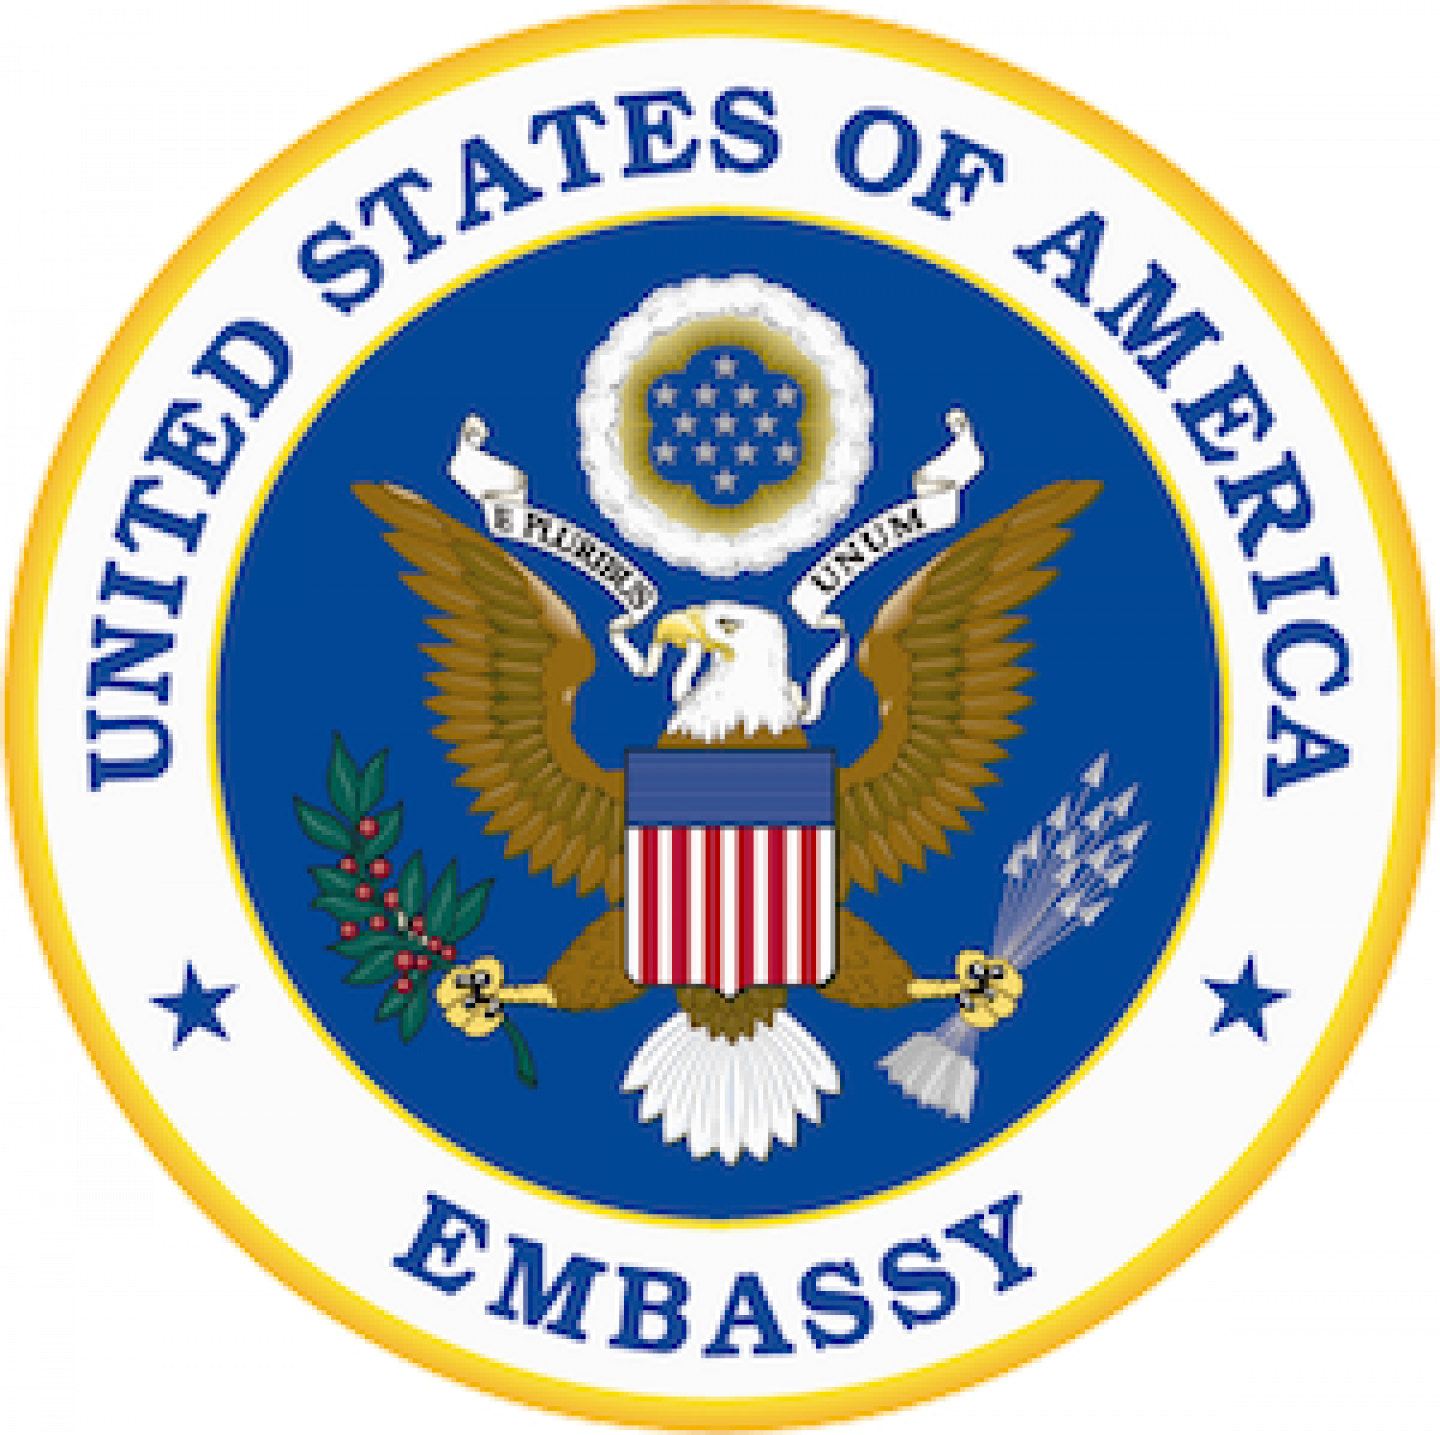 Seal_of_an_Embassy_of_the_United_States_of_America